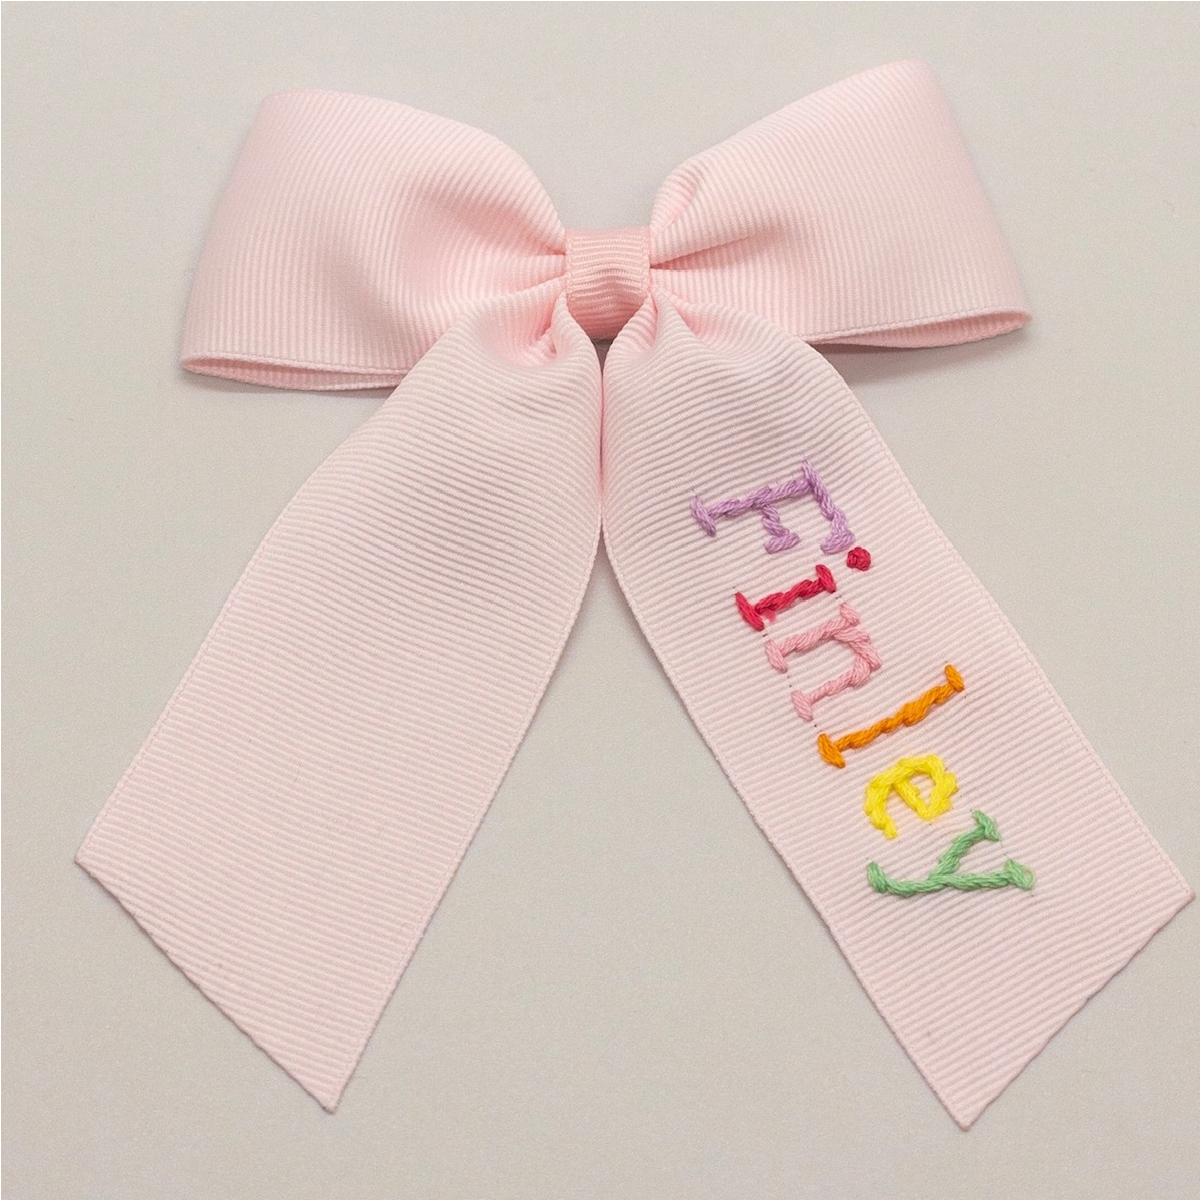 Winn and William Personalized Rainbow Bow